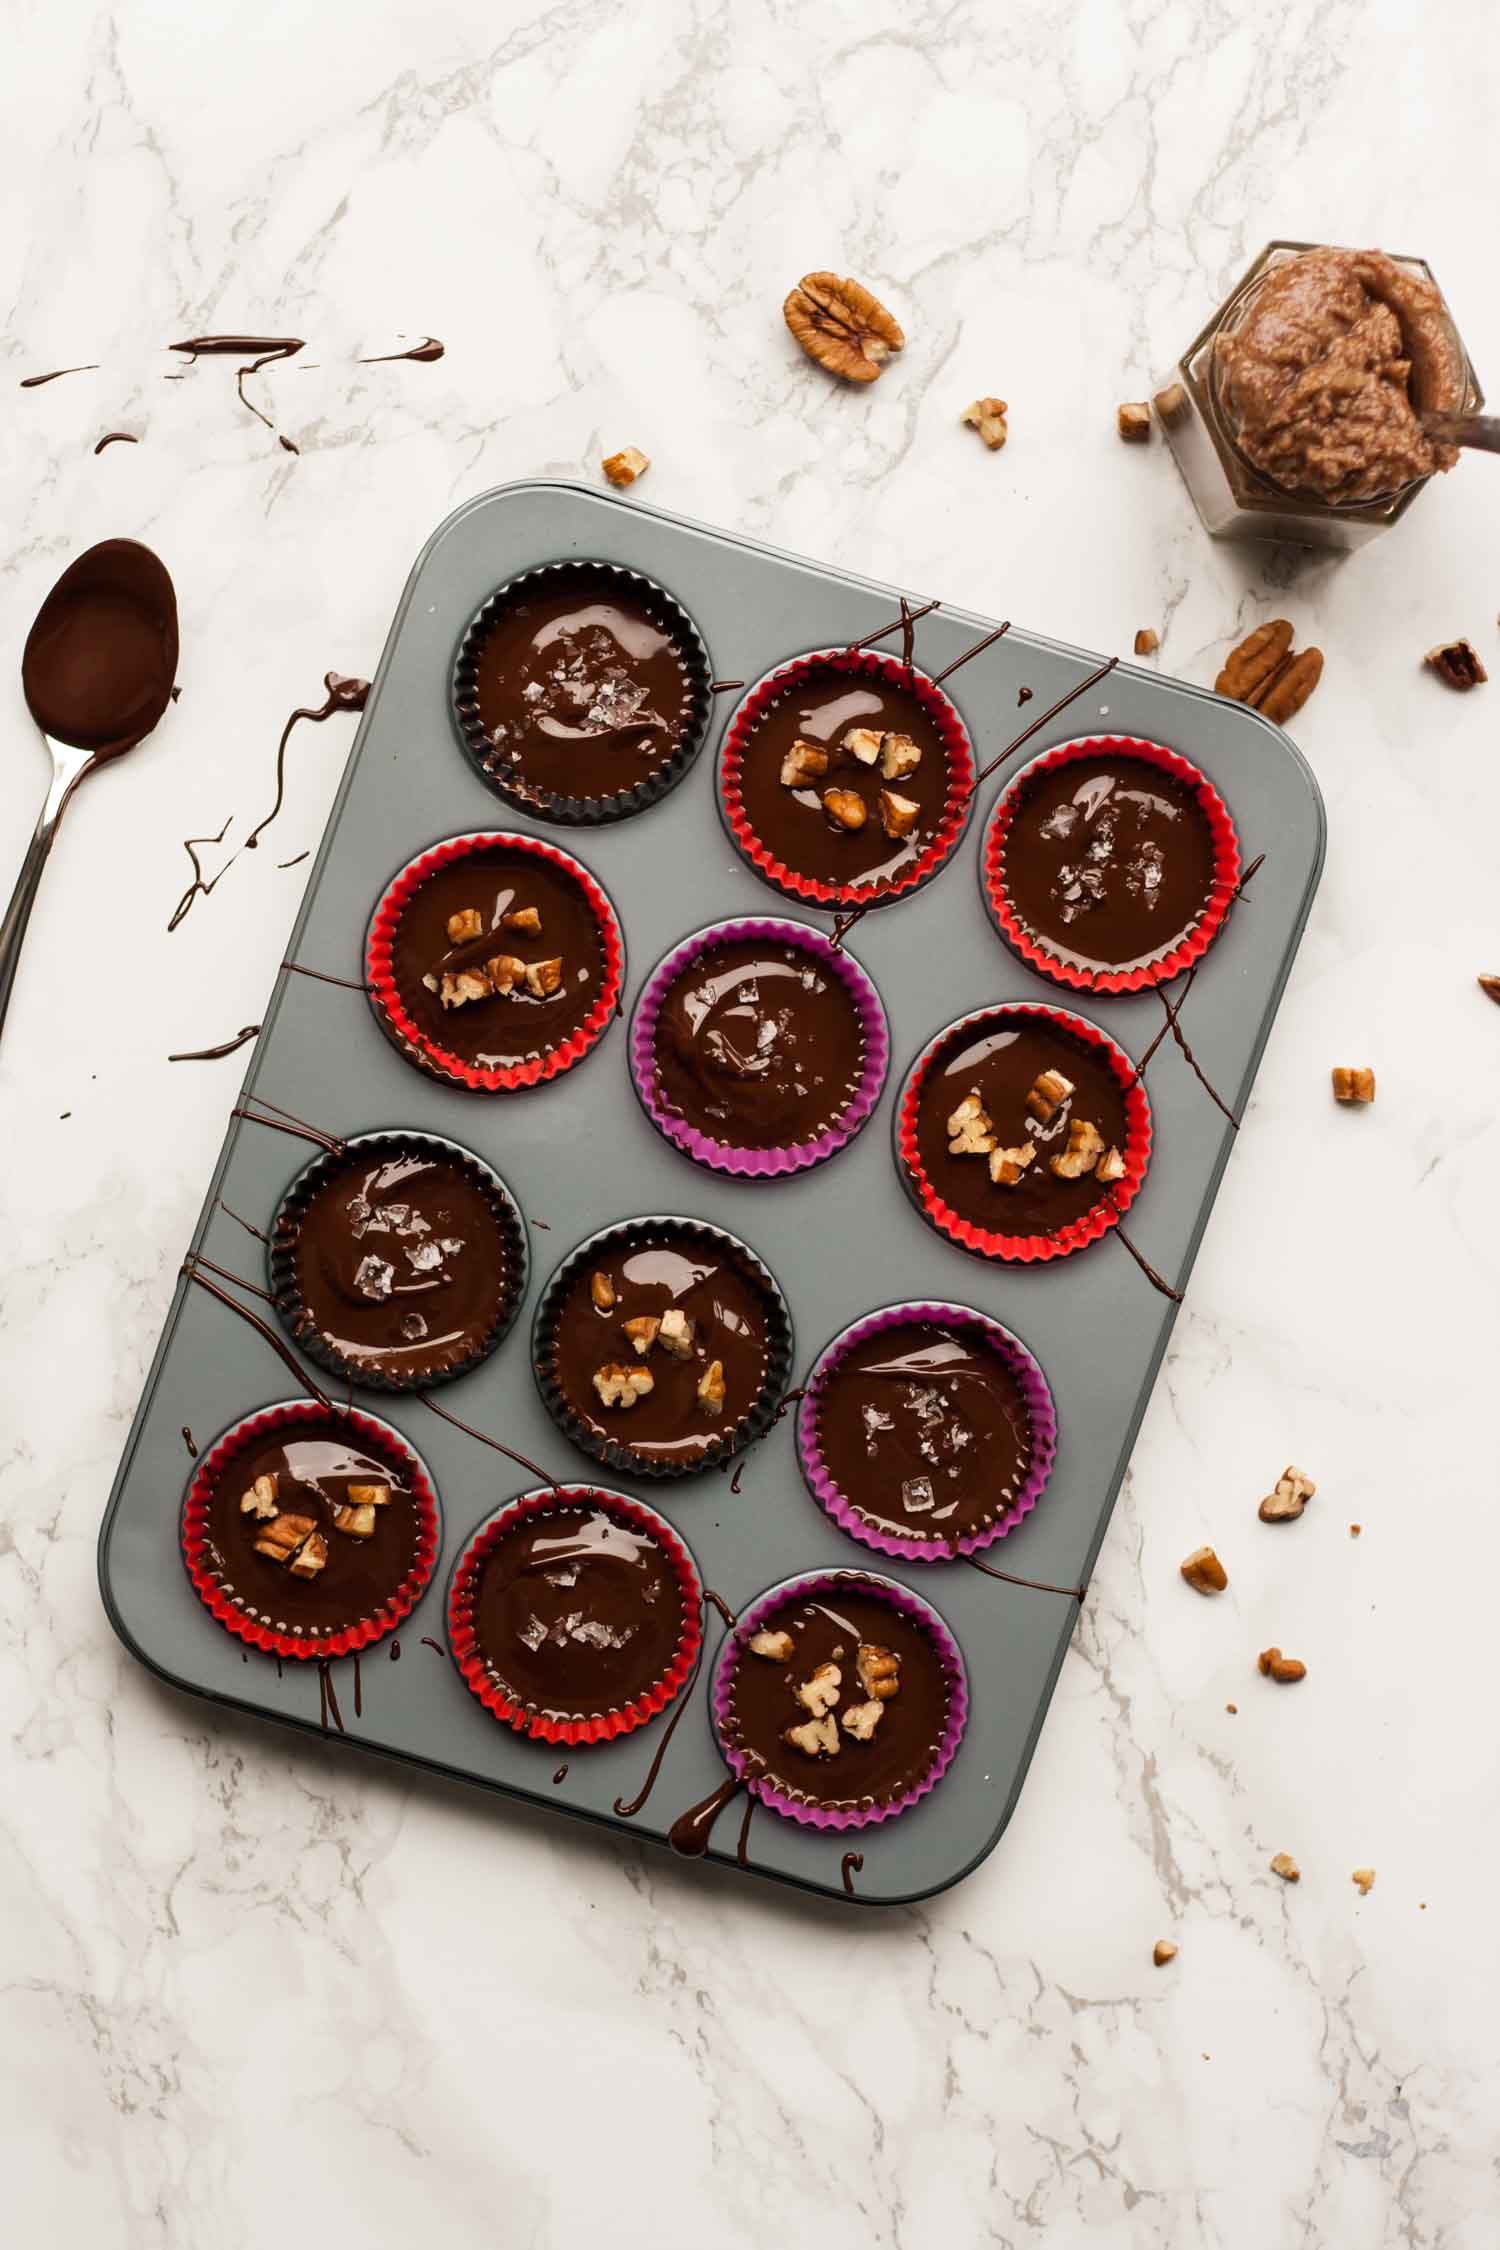 Maple Pecan Butter Cups - the perfect autumnal sweet snack, full of the flavours of rich maple syrup and toasty pecans (vegan) | eatloveeats.com